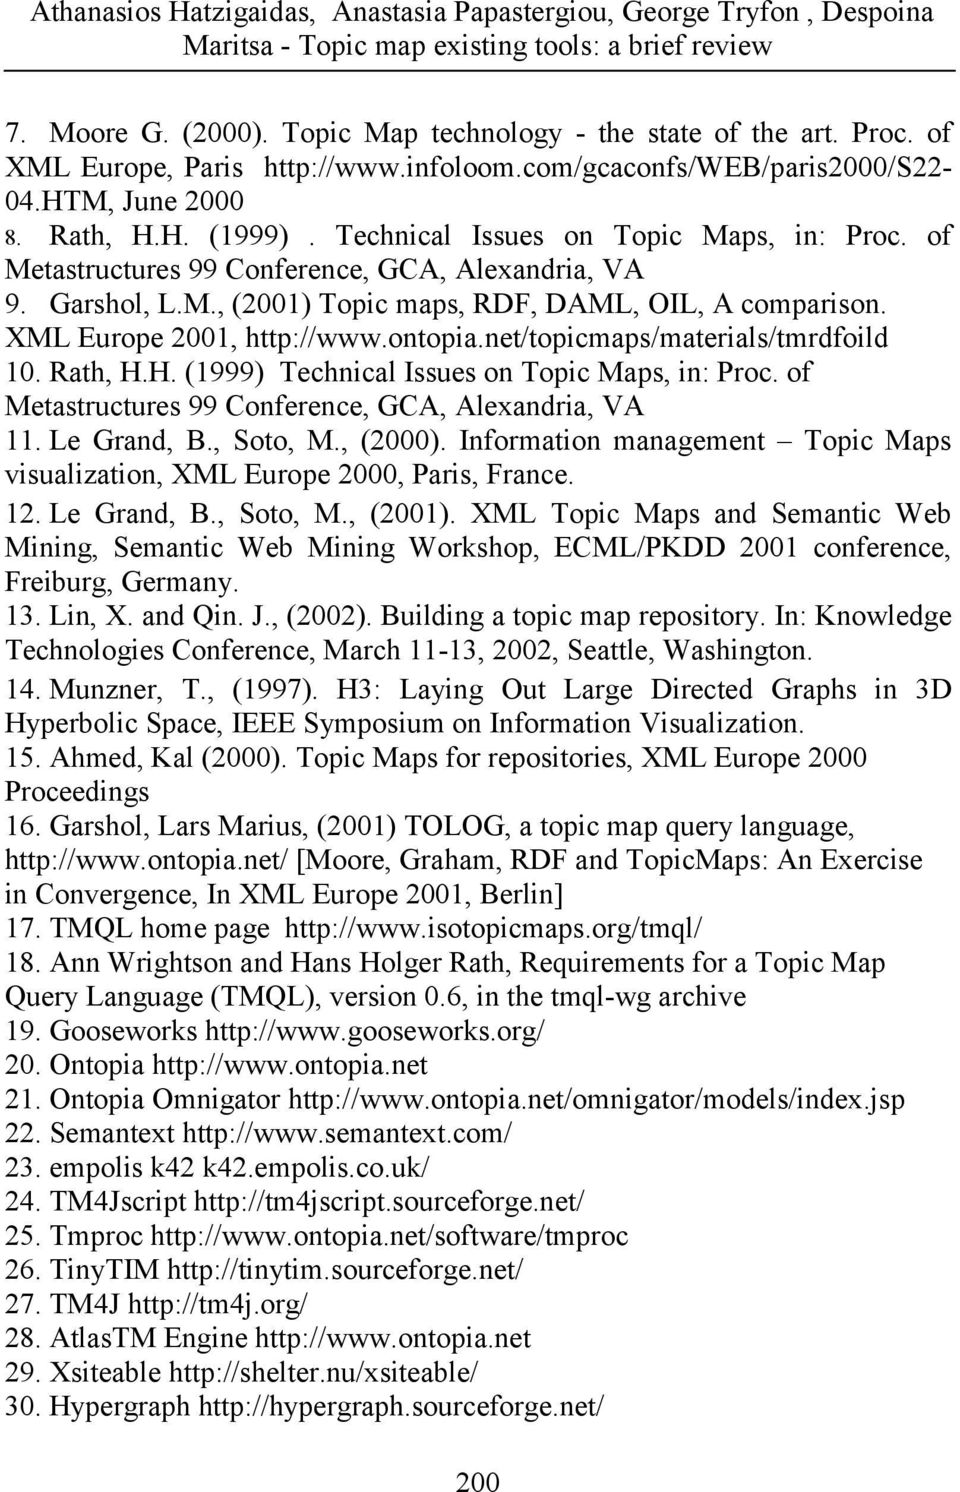 net/topicmaps/materials/tmrdfoild 10. Rath, H.H. (1999) Technical Issues on Topic Maps, in: Proc. of Metastructures 99 Conference, GCA, Alexandria, VA 11. Le Grand, B., Soto, M., (2000).